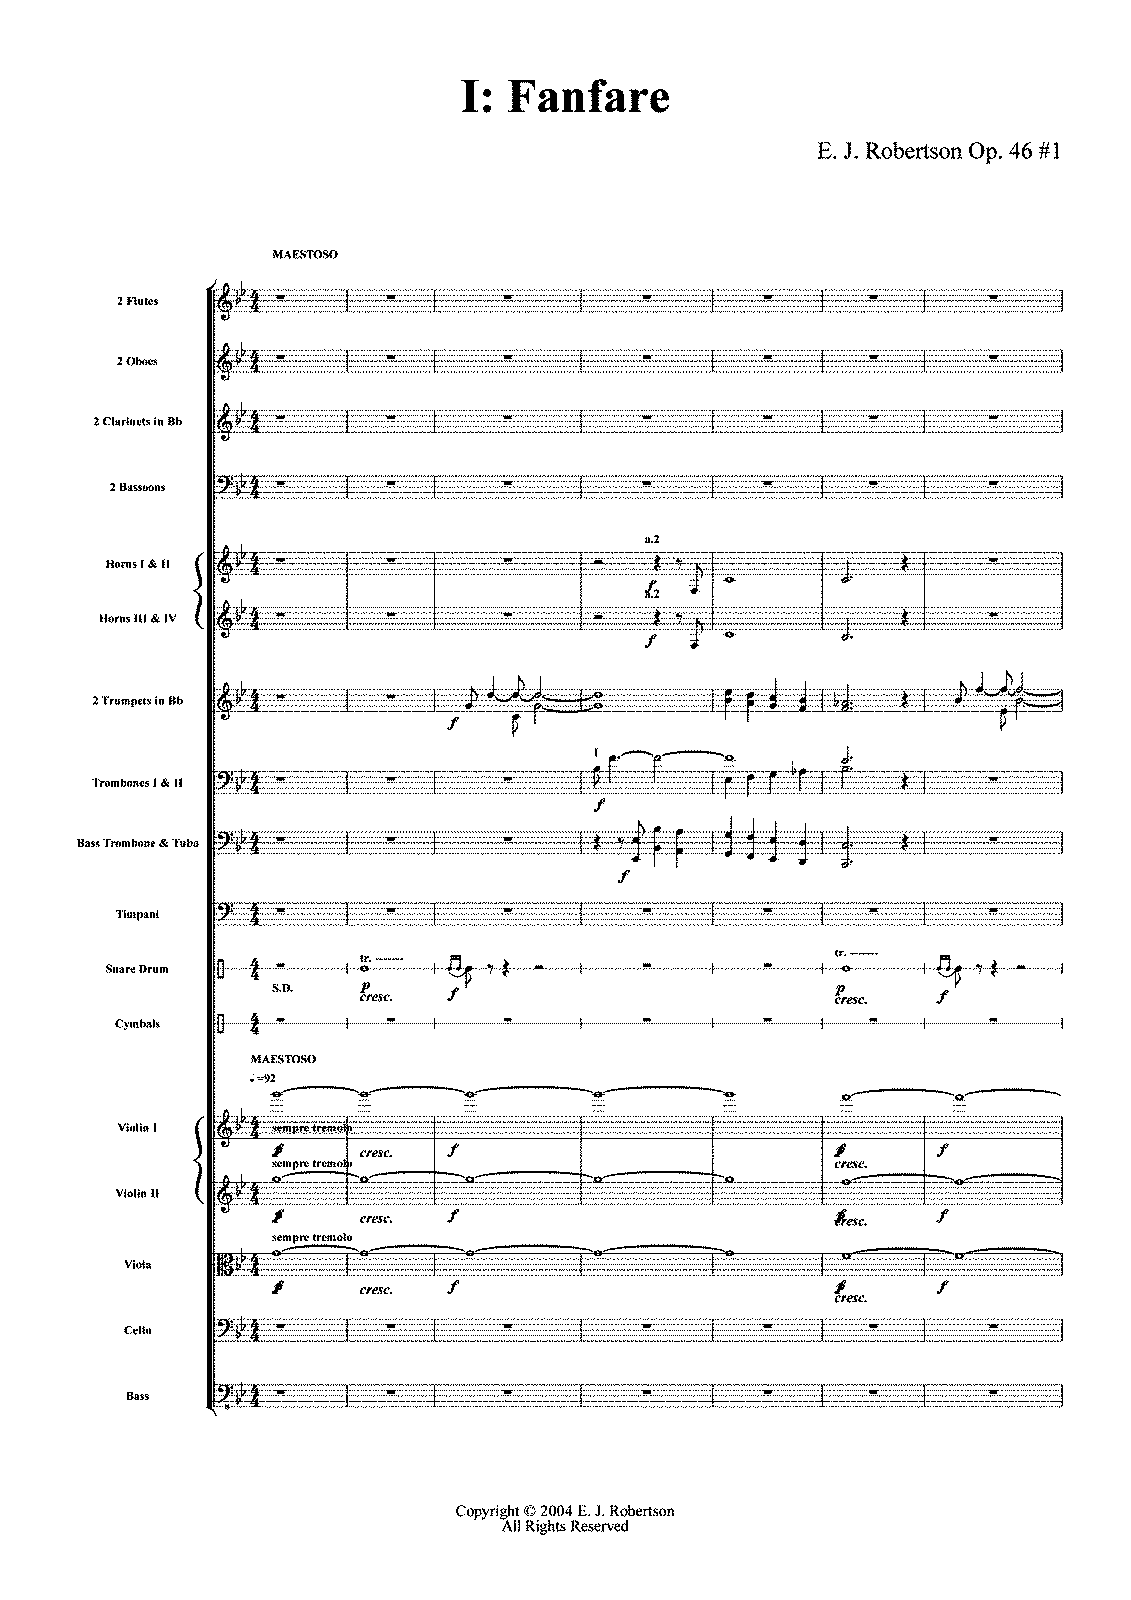 PMLP297593-Fanfare Op 46 -1 (I Suite for Orchestra) cut.pdf